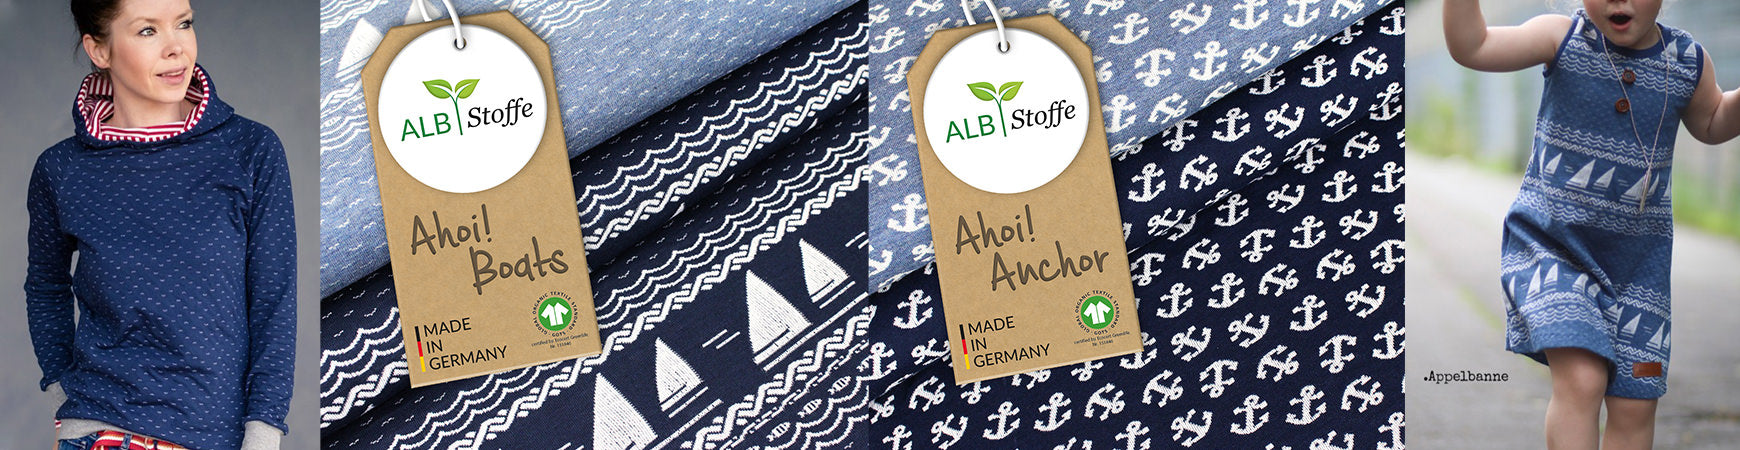 Ahoi! Kollektion Albstoffe Anchor Boats Sail Away